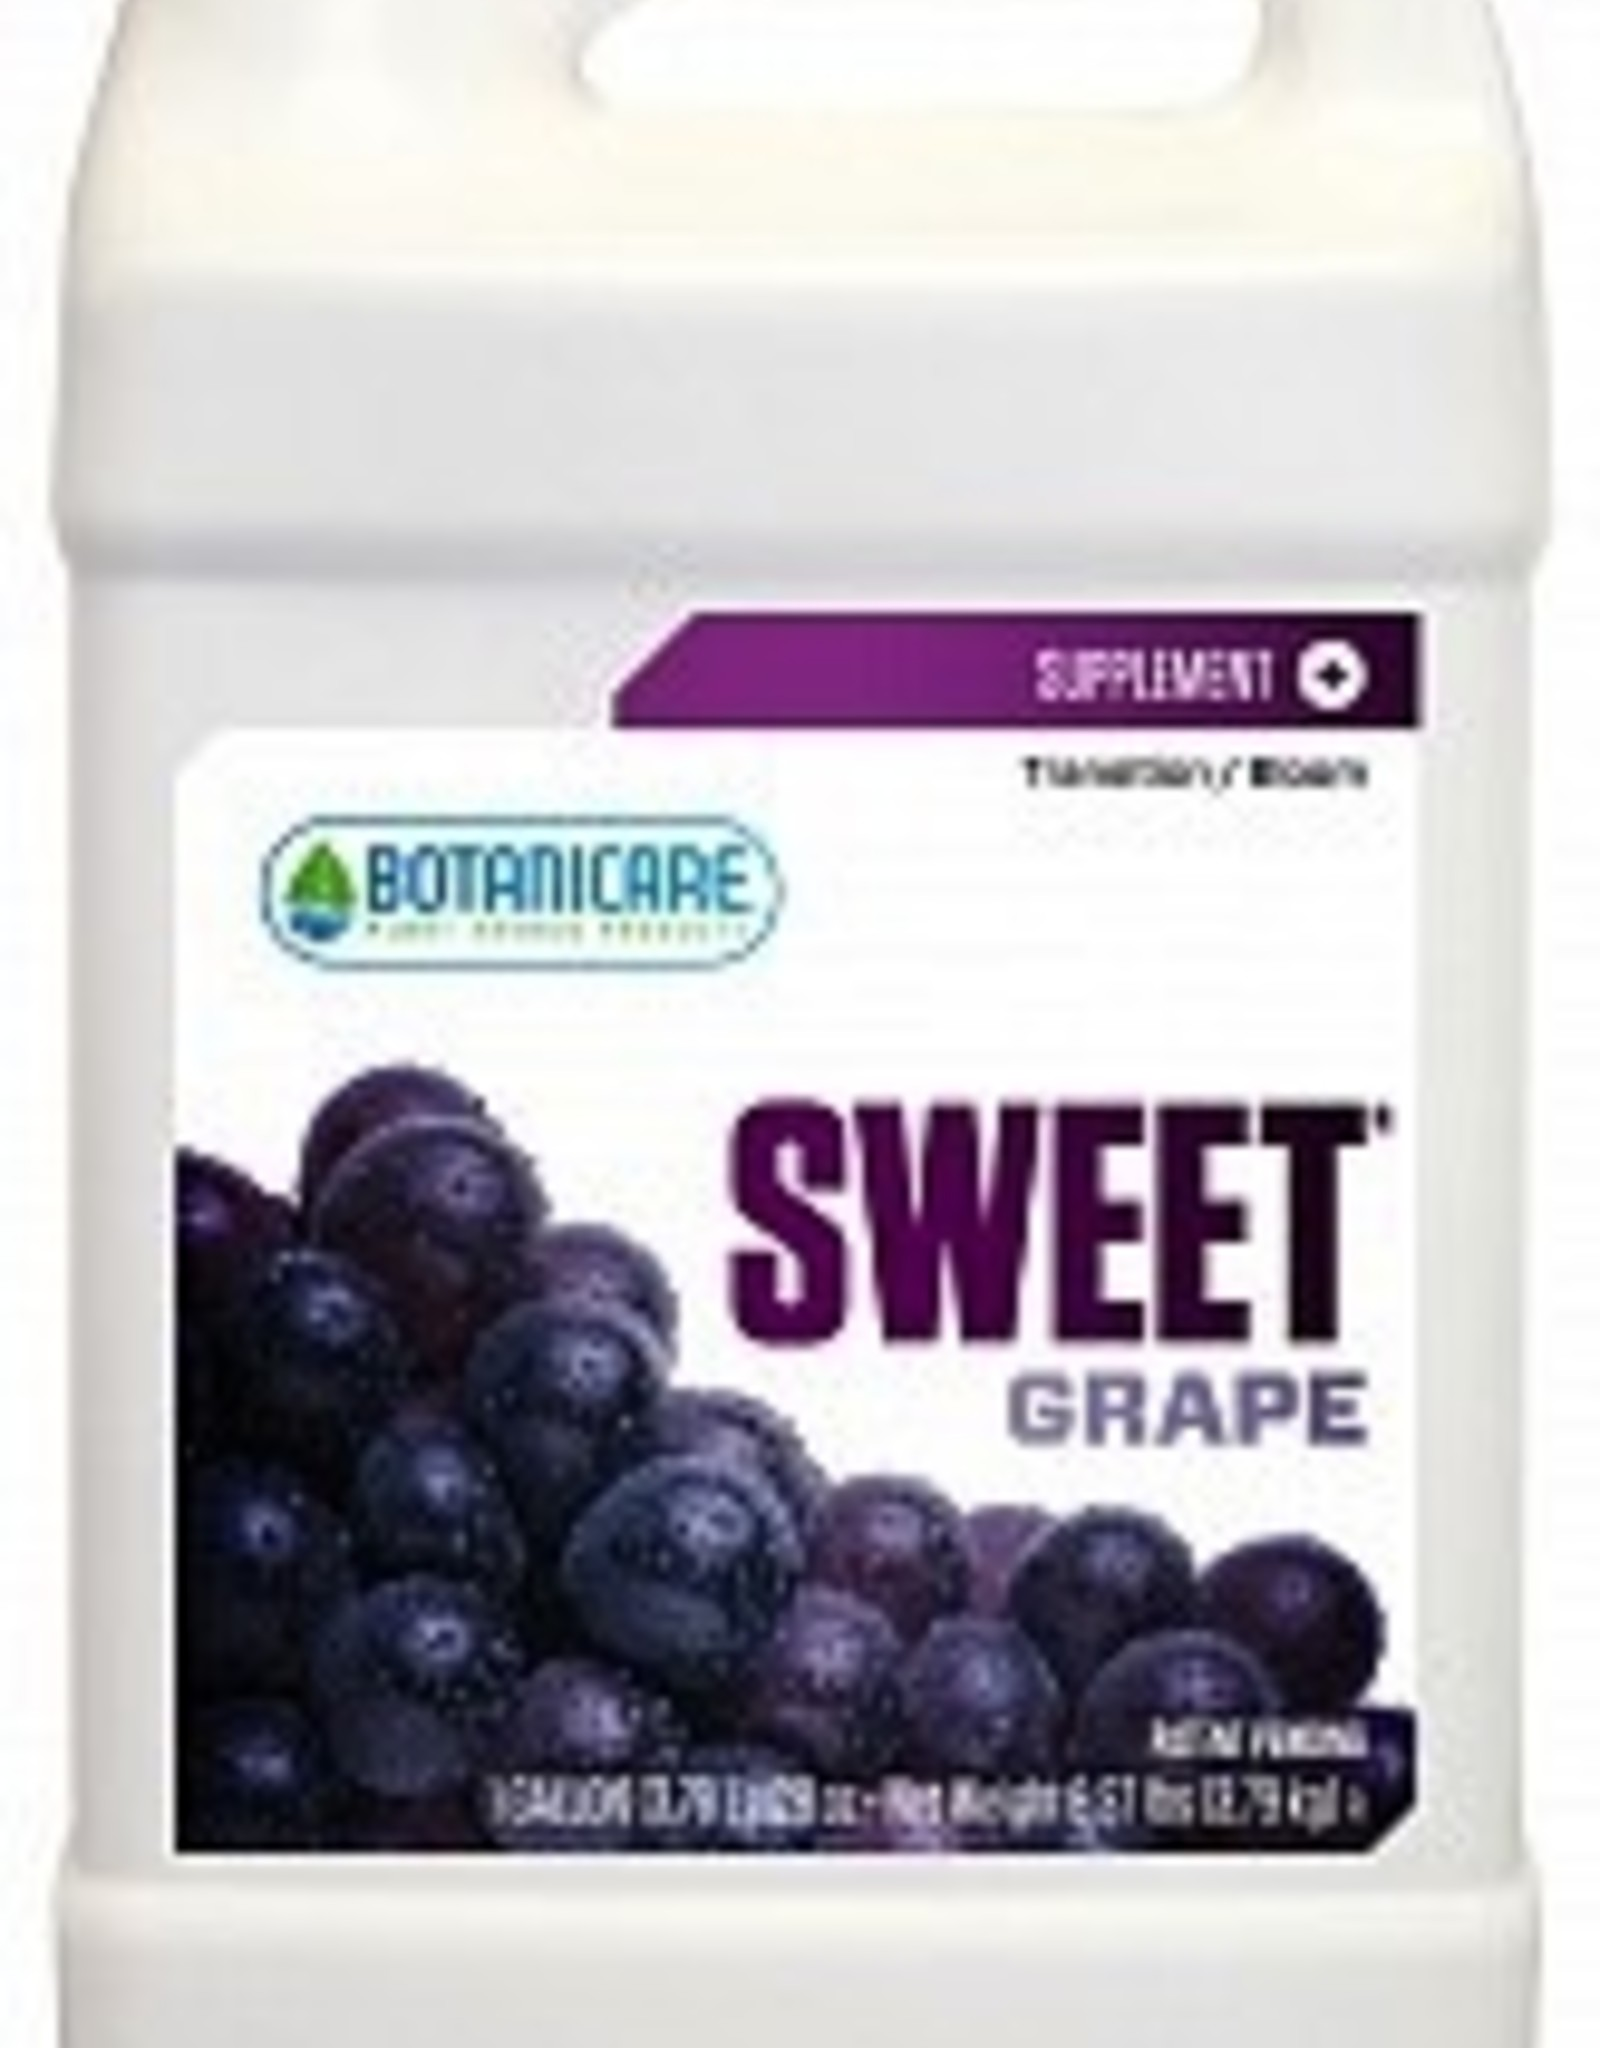 BOTANICARE Sweet Grape, 1 gal